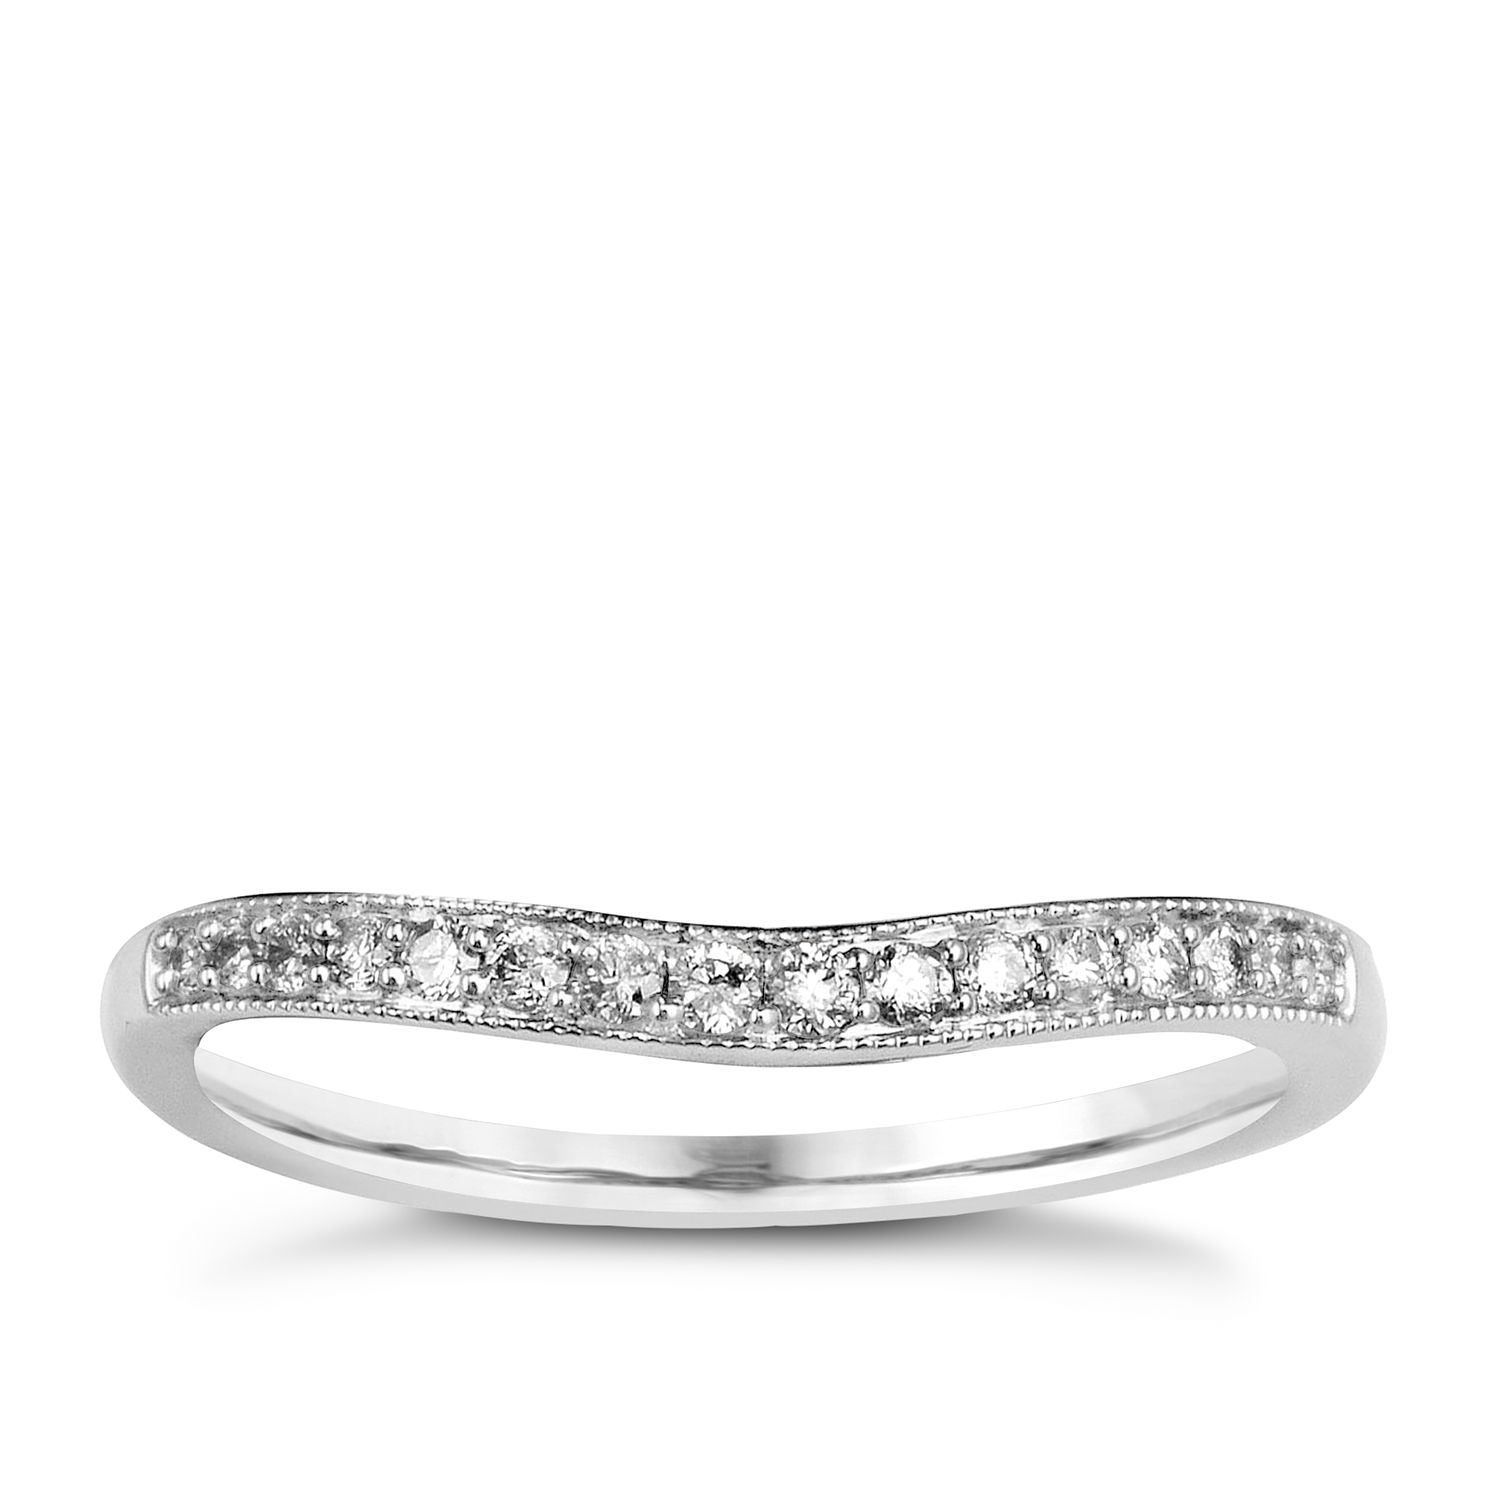 Perfect Fit 9ct White Gold & Diamond Eternity Ring - Product number 9985026